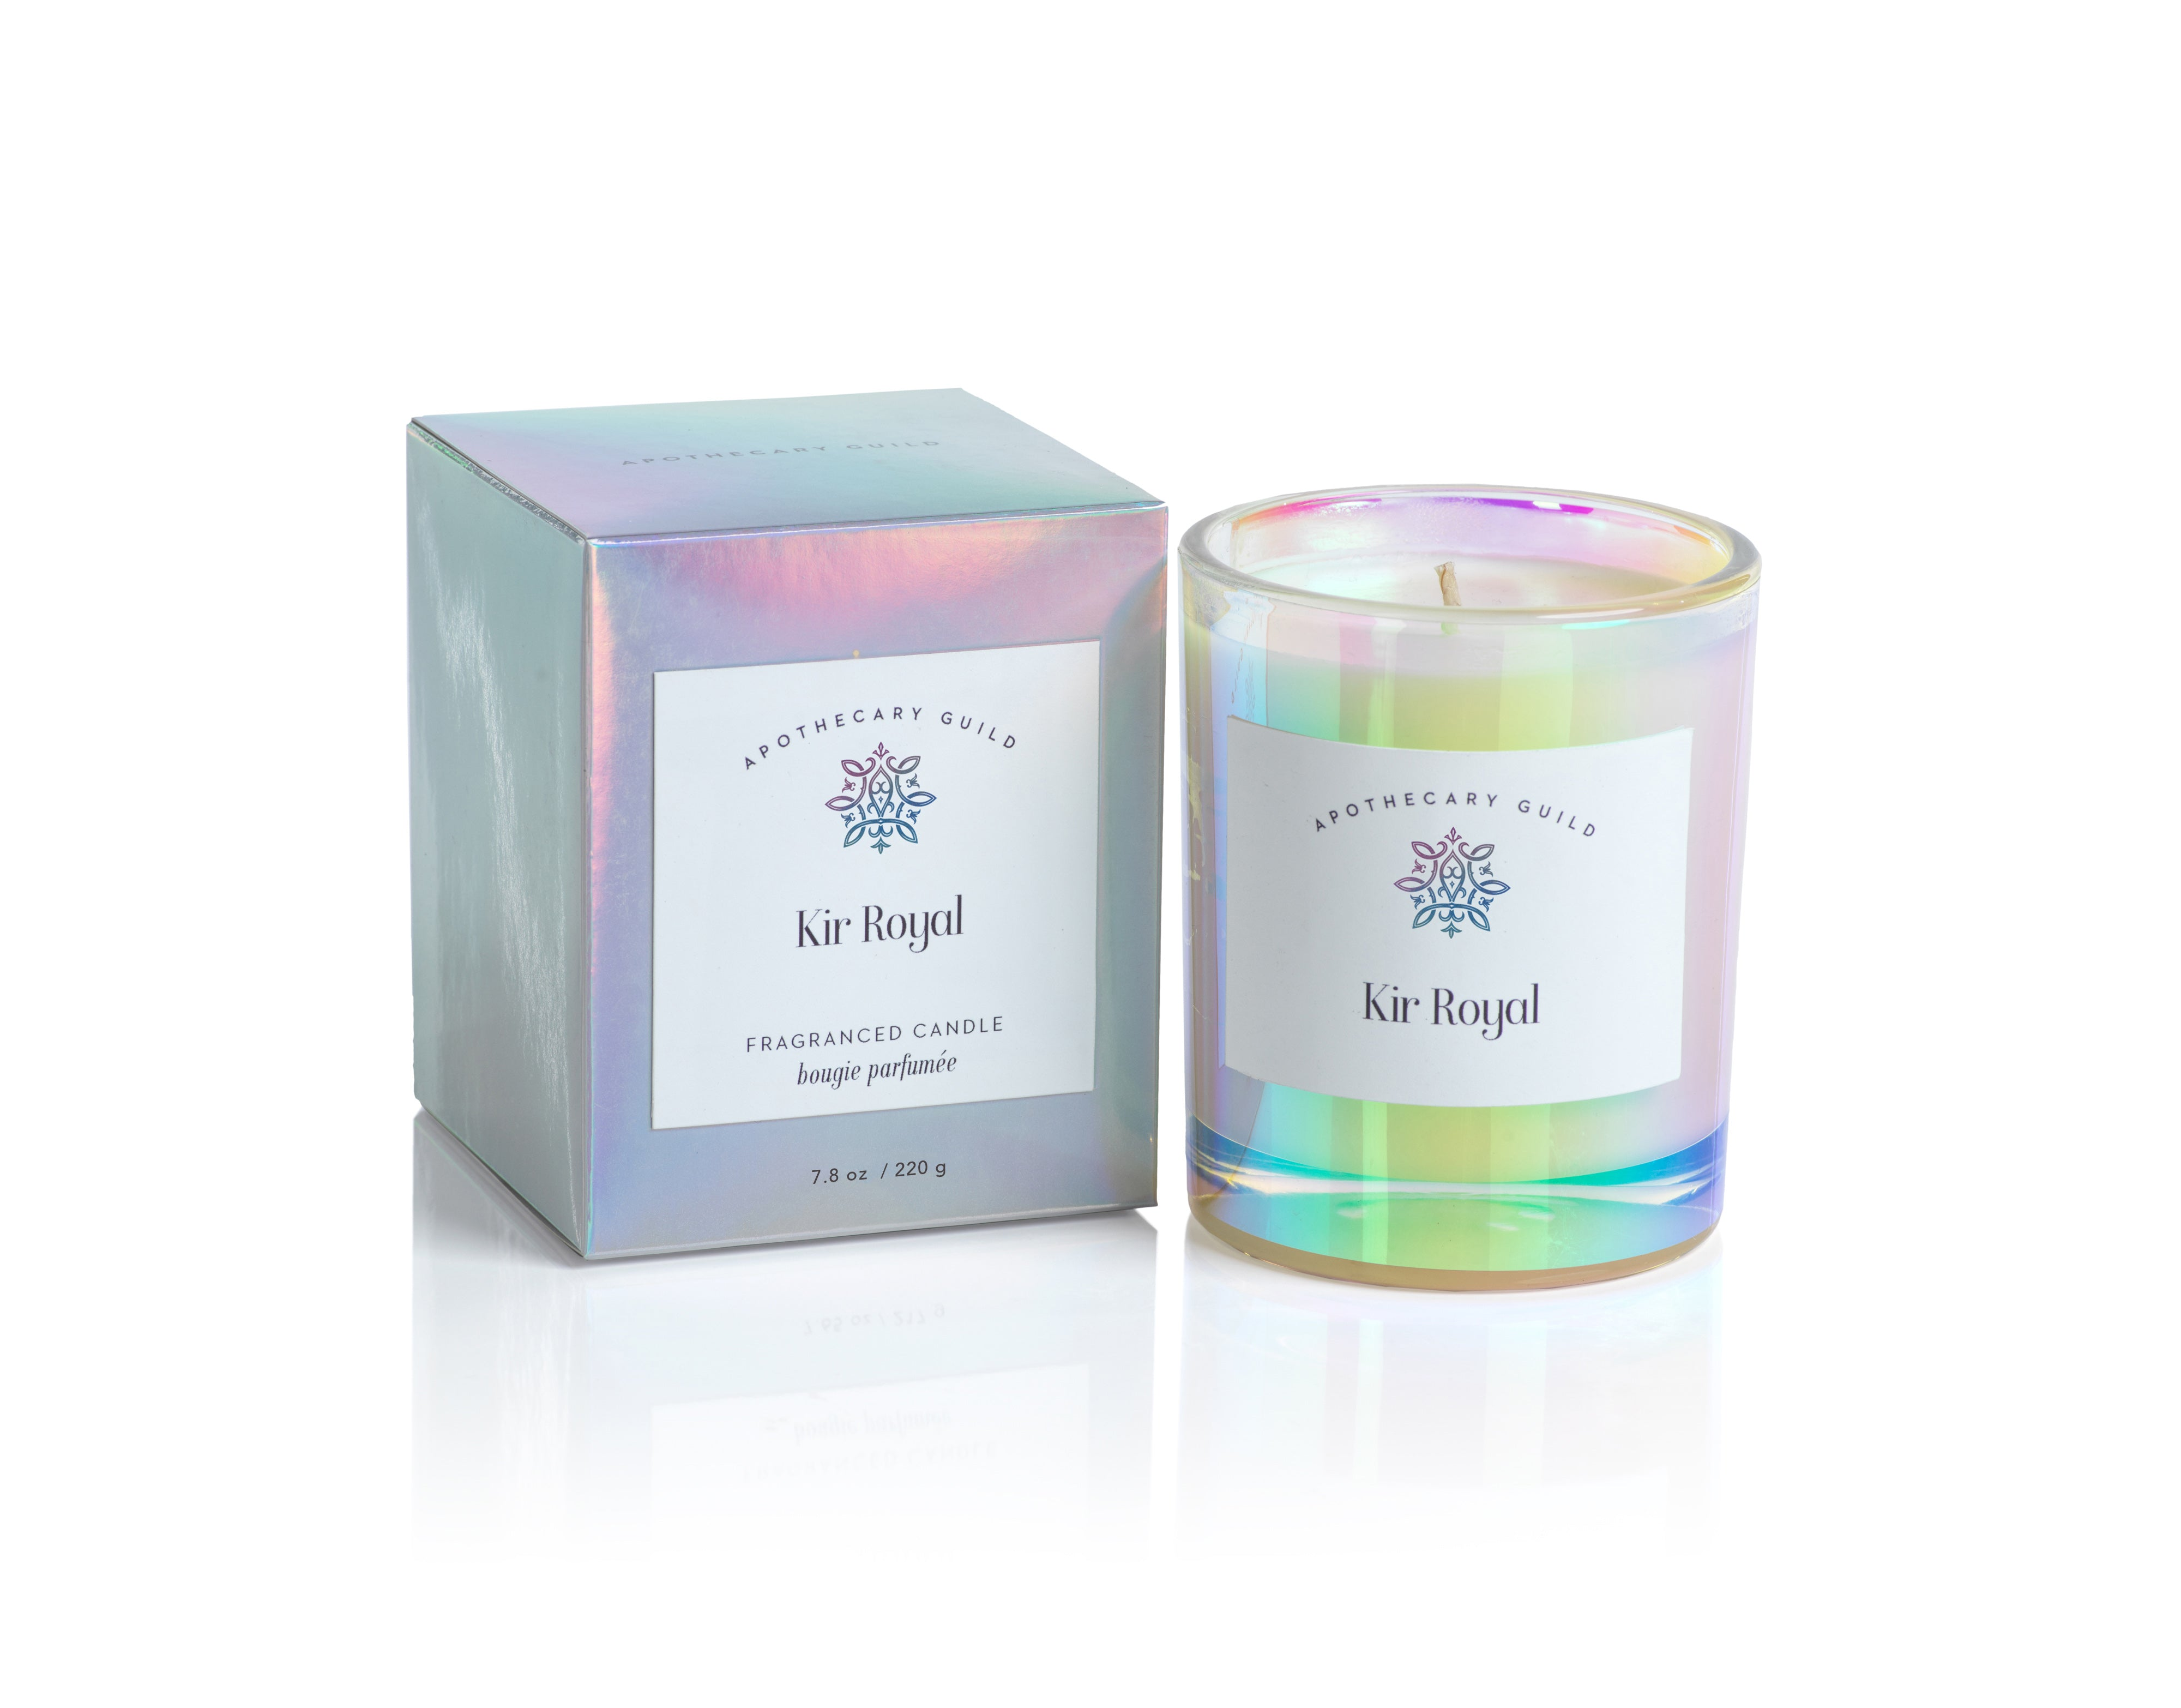 Apothecary Guild Iridescent Candle - CARLYLE AVENUE